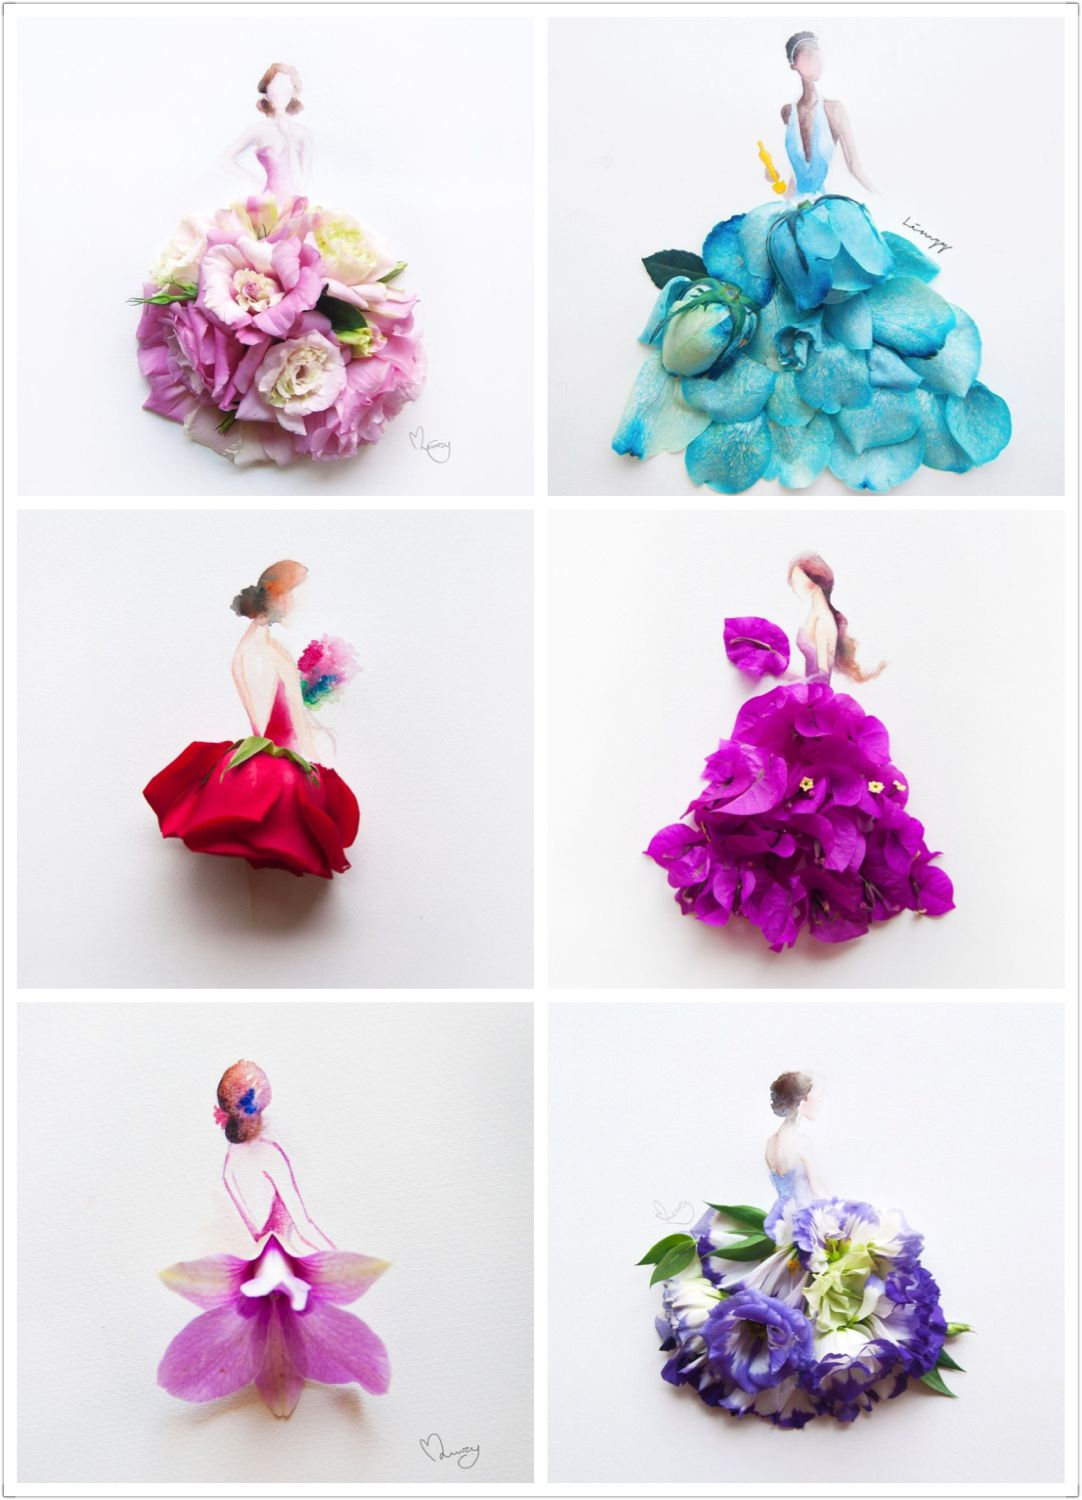 Happy Mothers Day Beautiful Flower Art By Limzy For All Beautiful